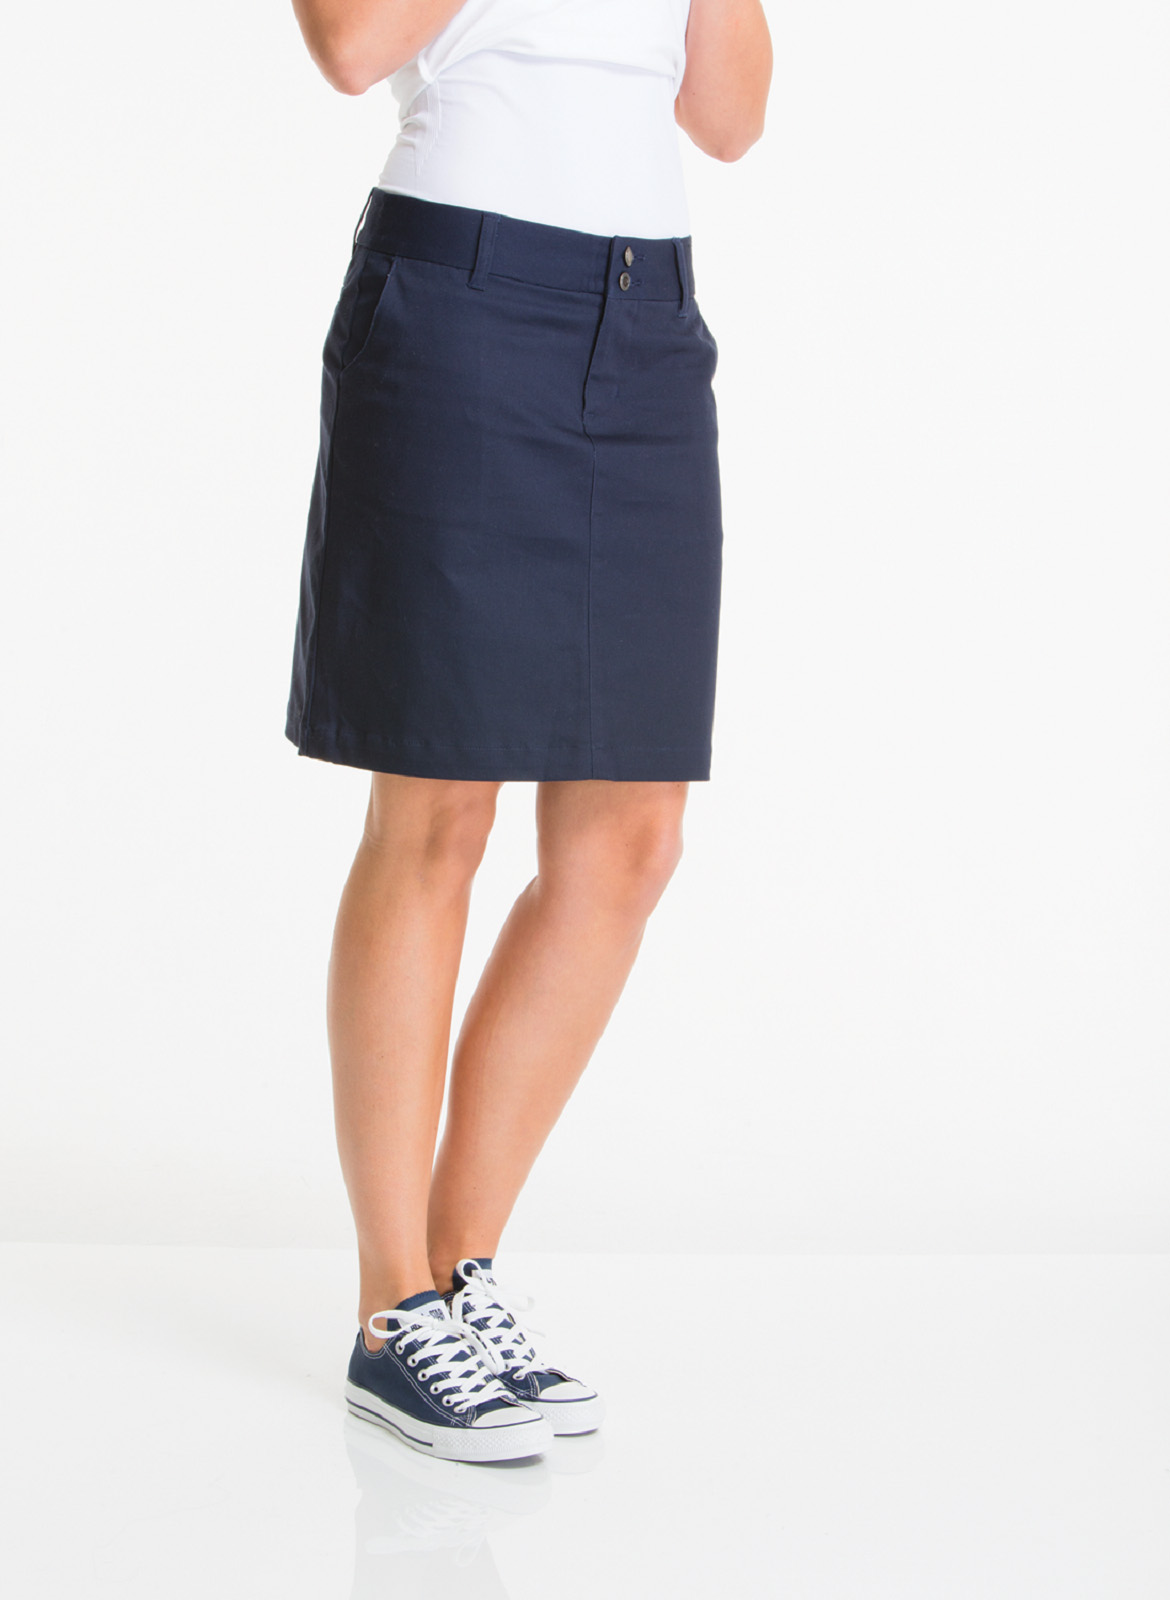 School Skirts Kmart Lee Uniforms Juniors Classic Skirt